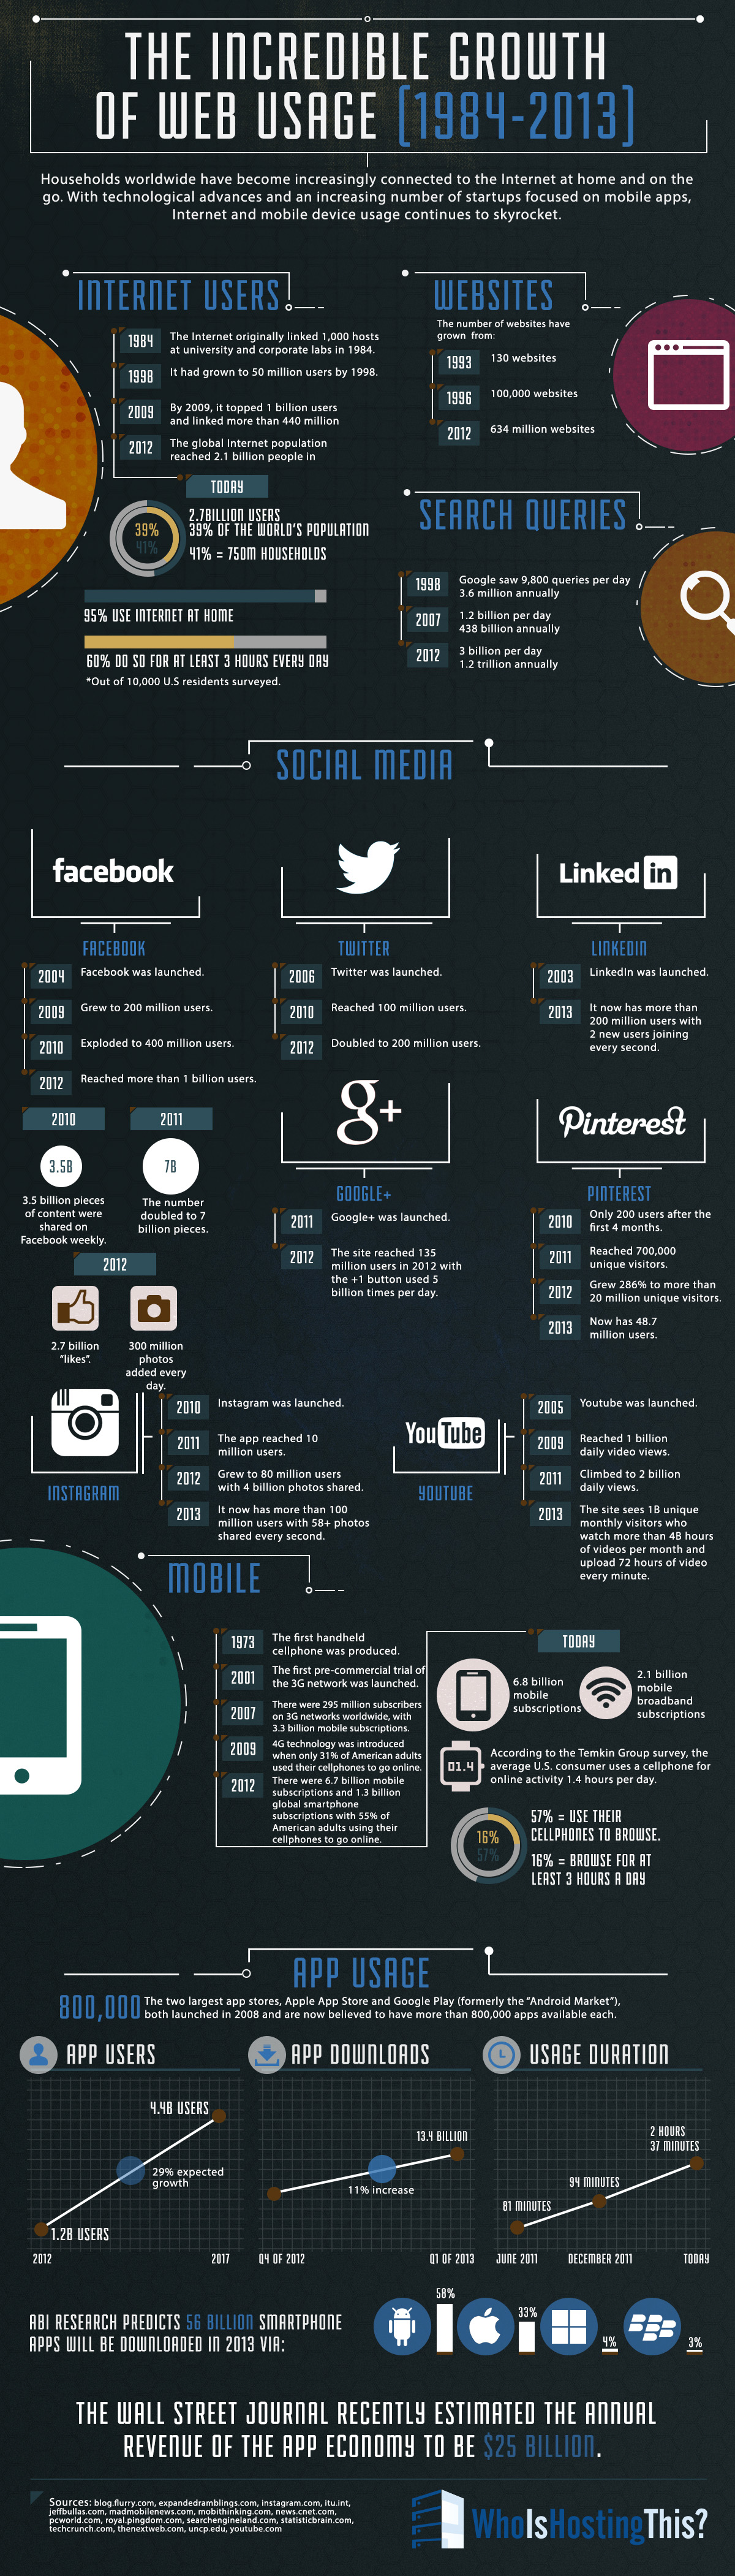 Infographic over internet